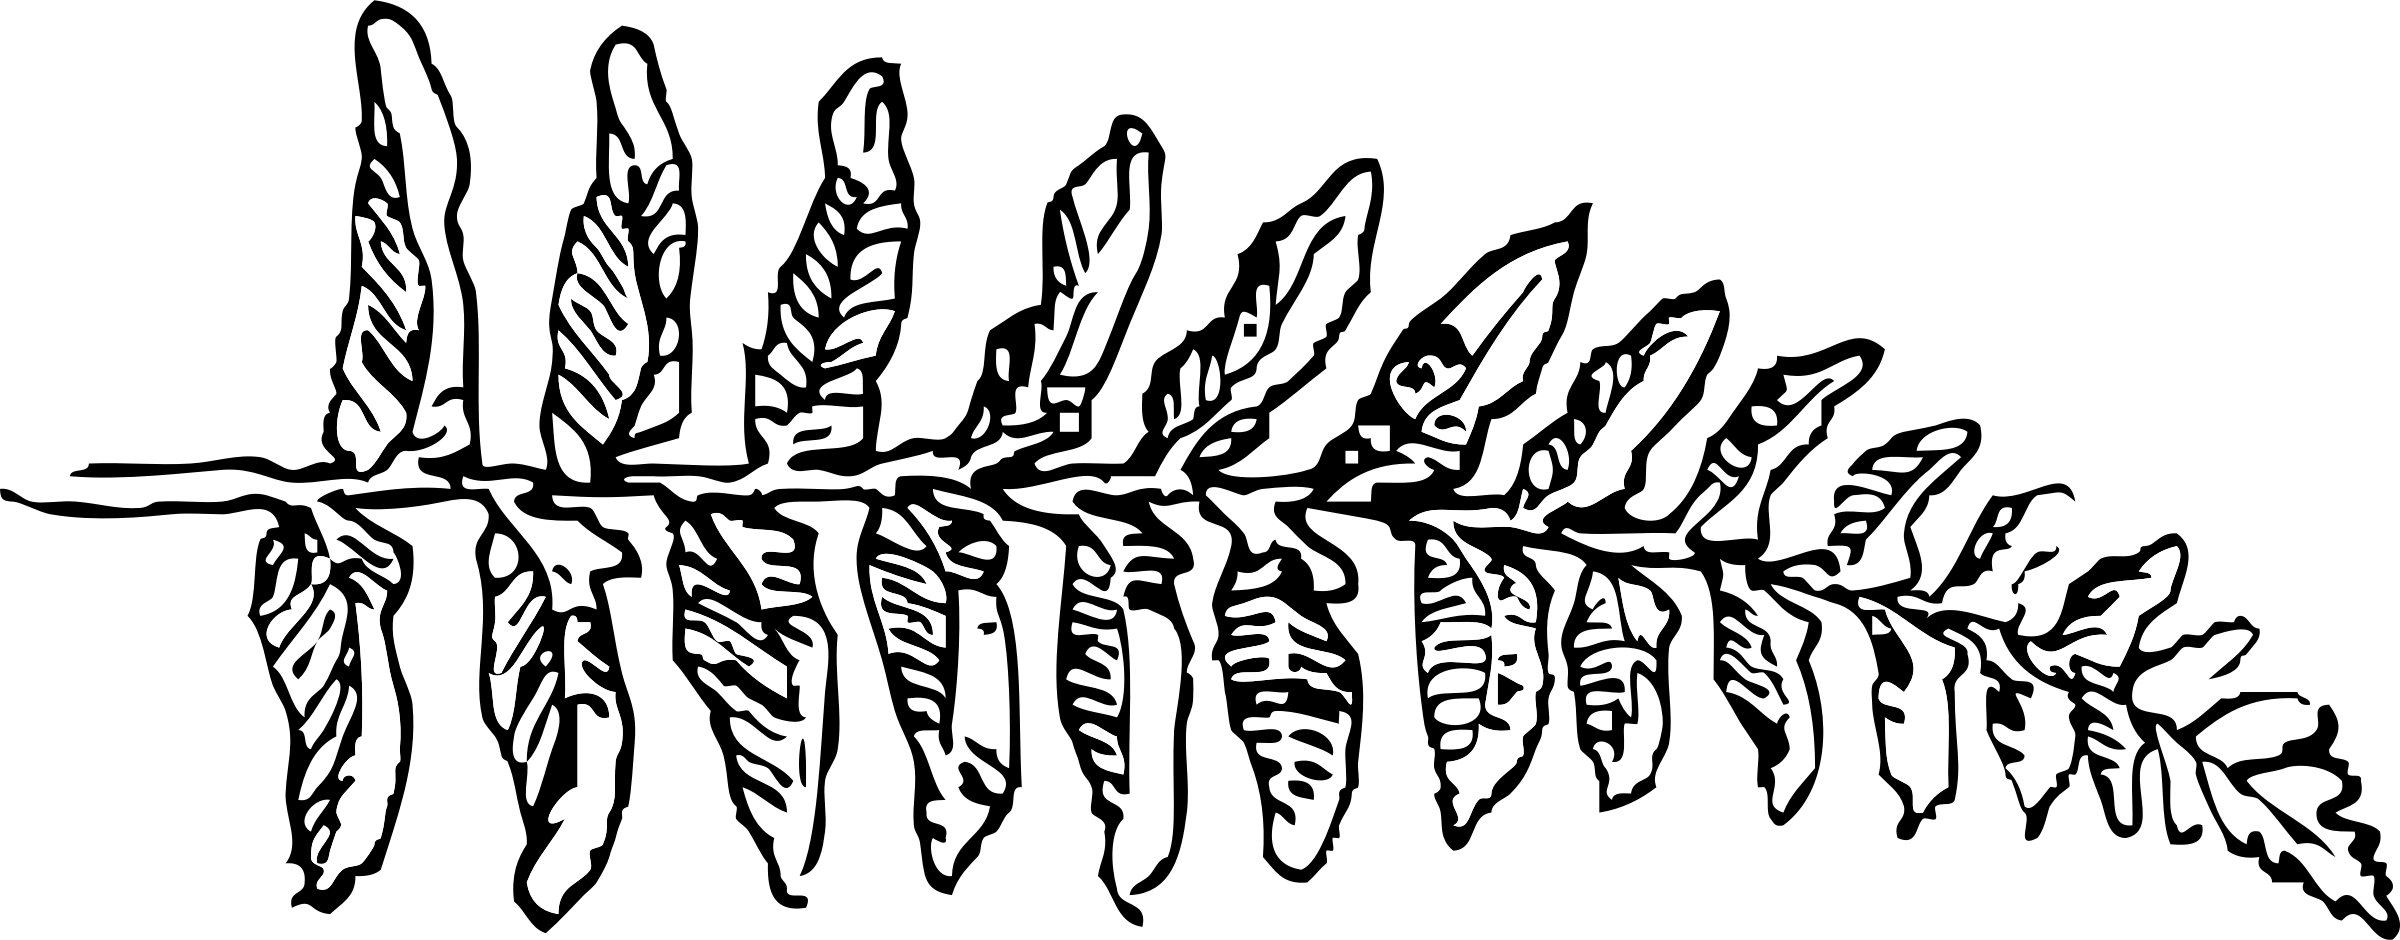 Clipart leaves fern. Branch big image png